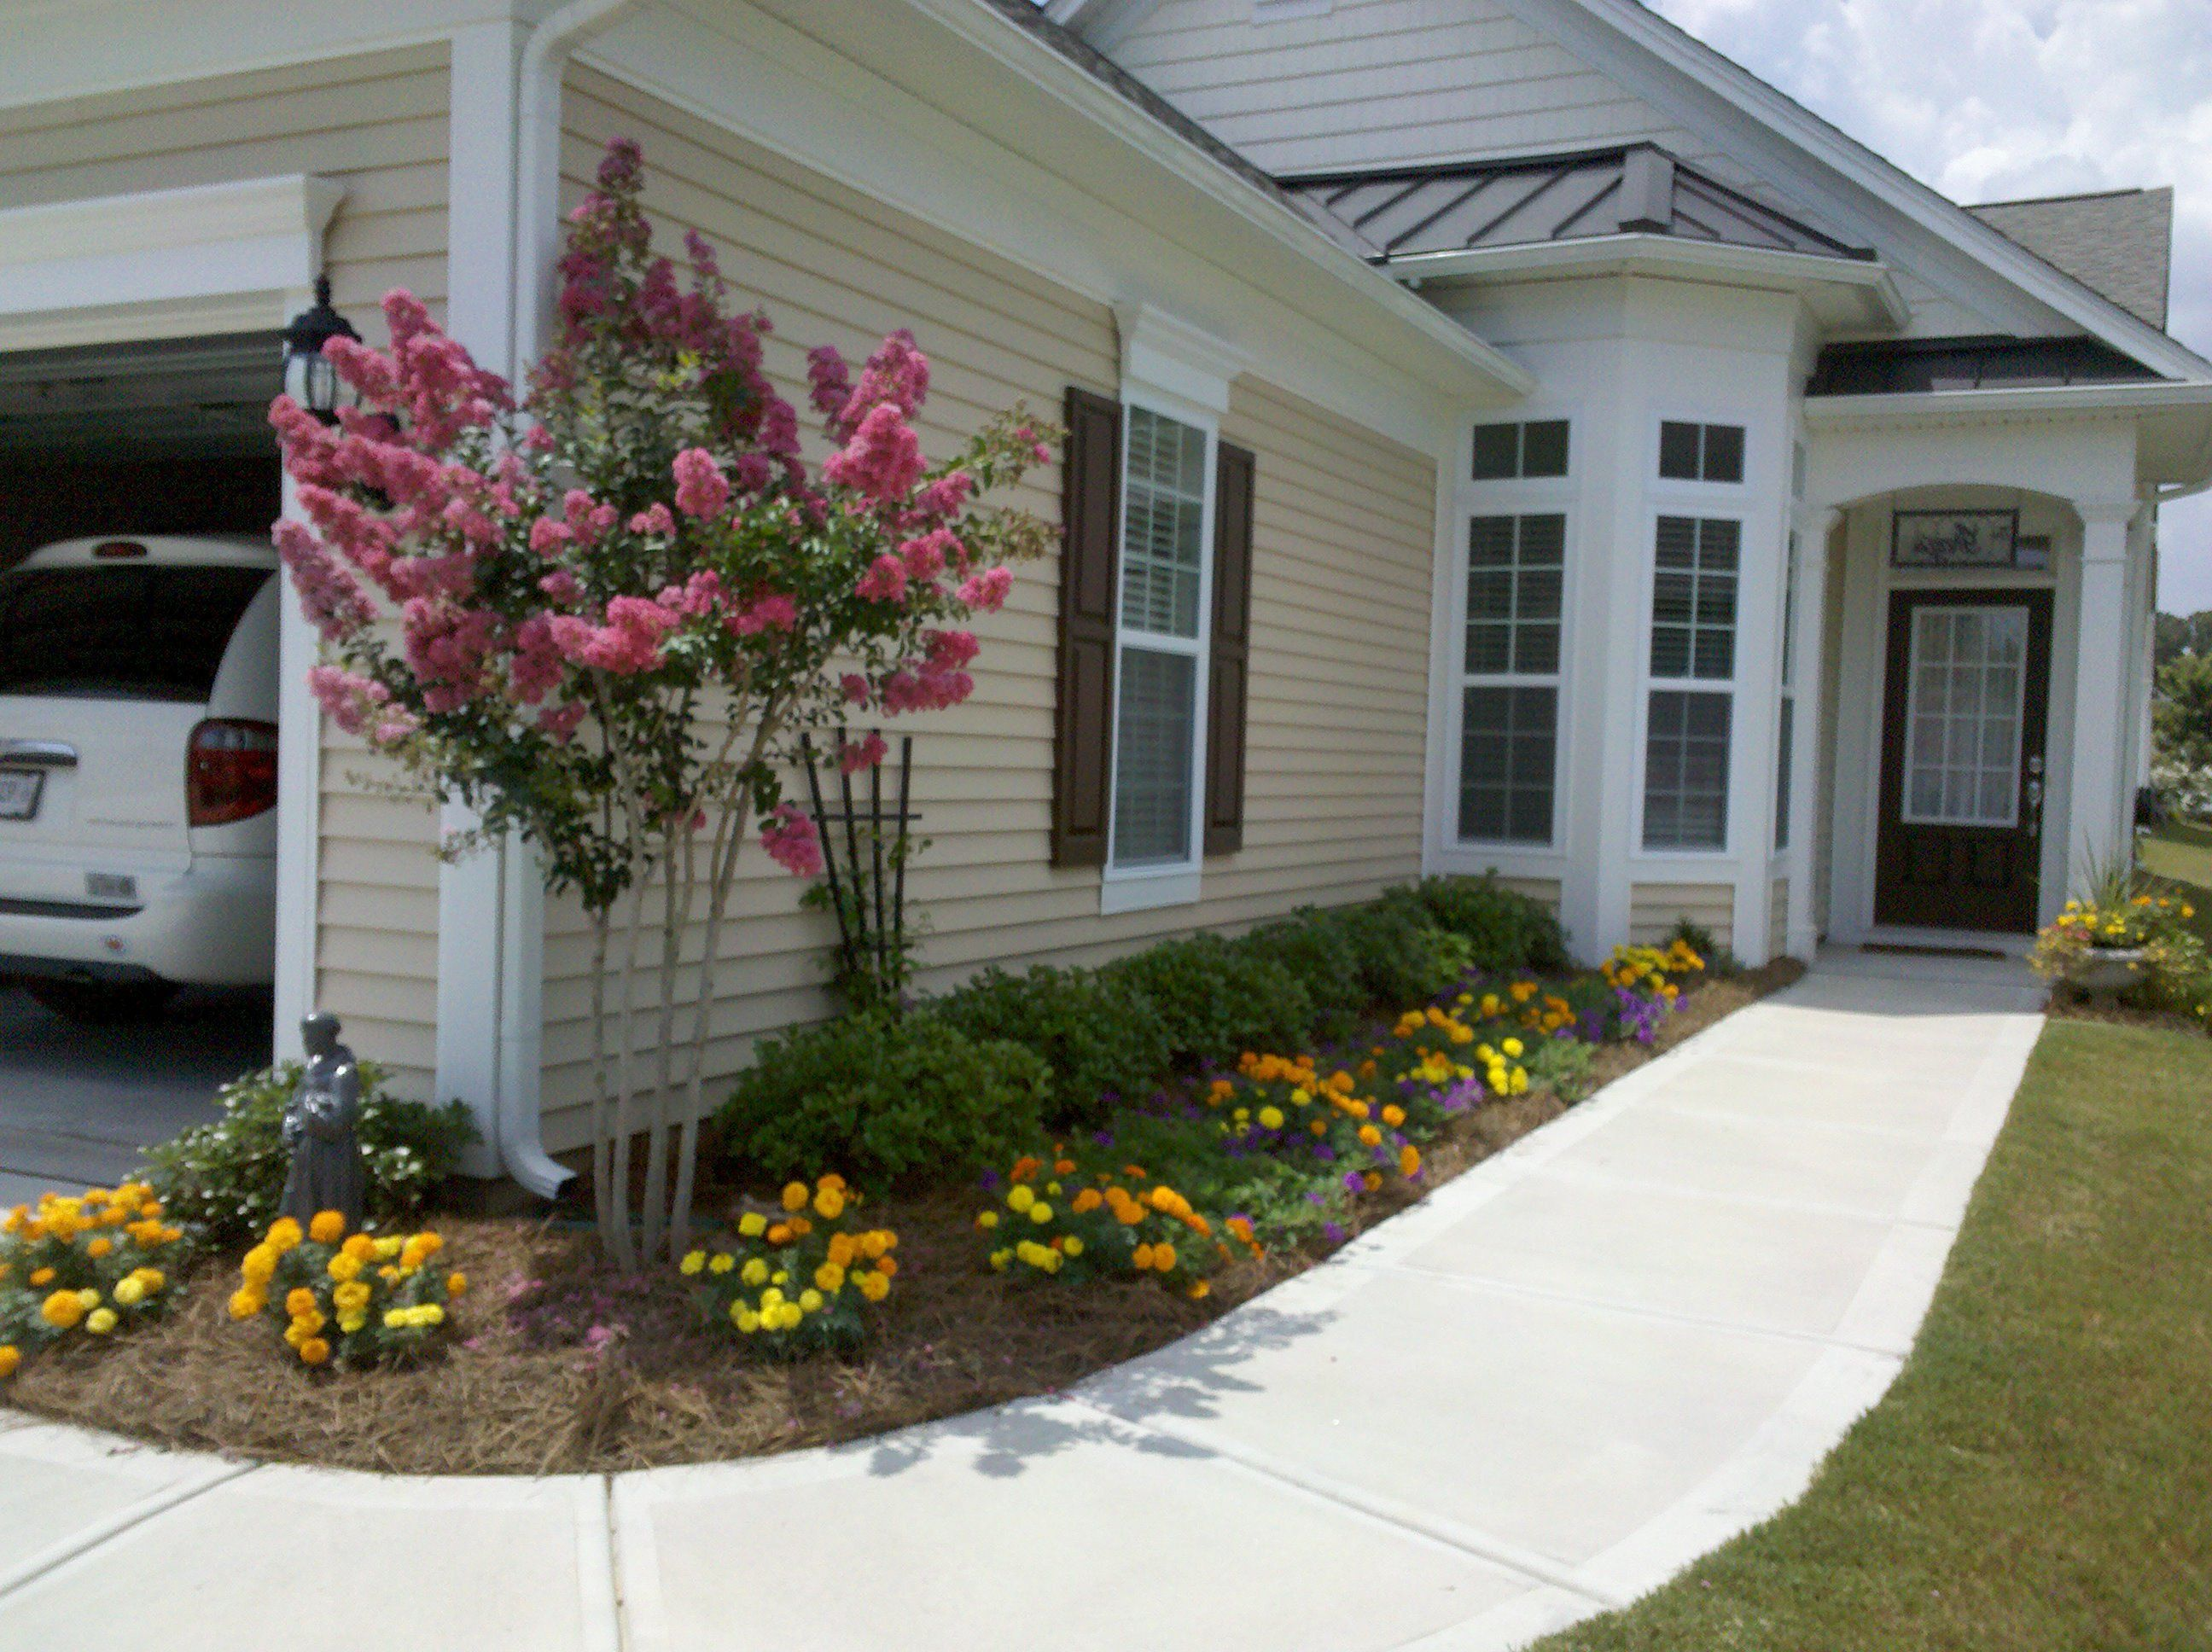 25 easy and wonderful landscaping design ideas for on inspiring trends front yard landscaping ideas minimal budget id=87330